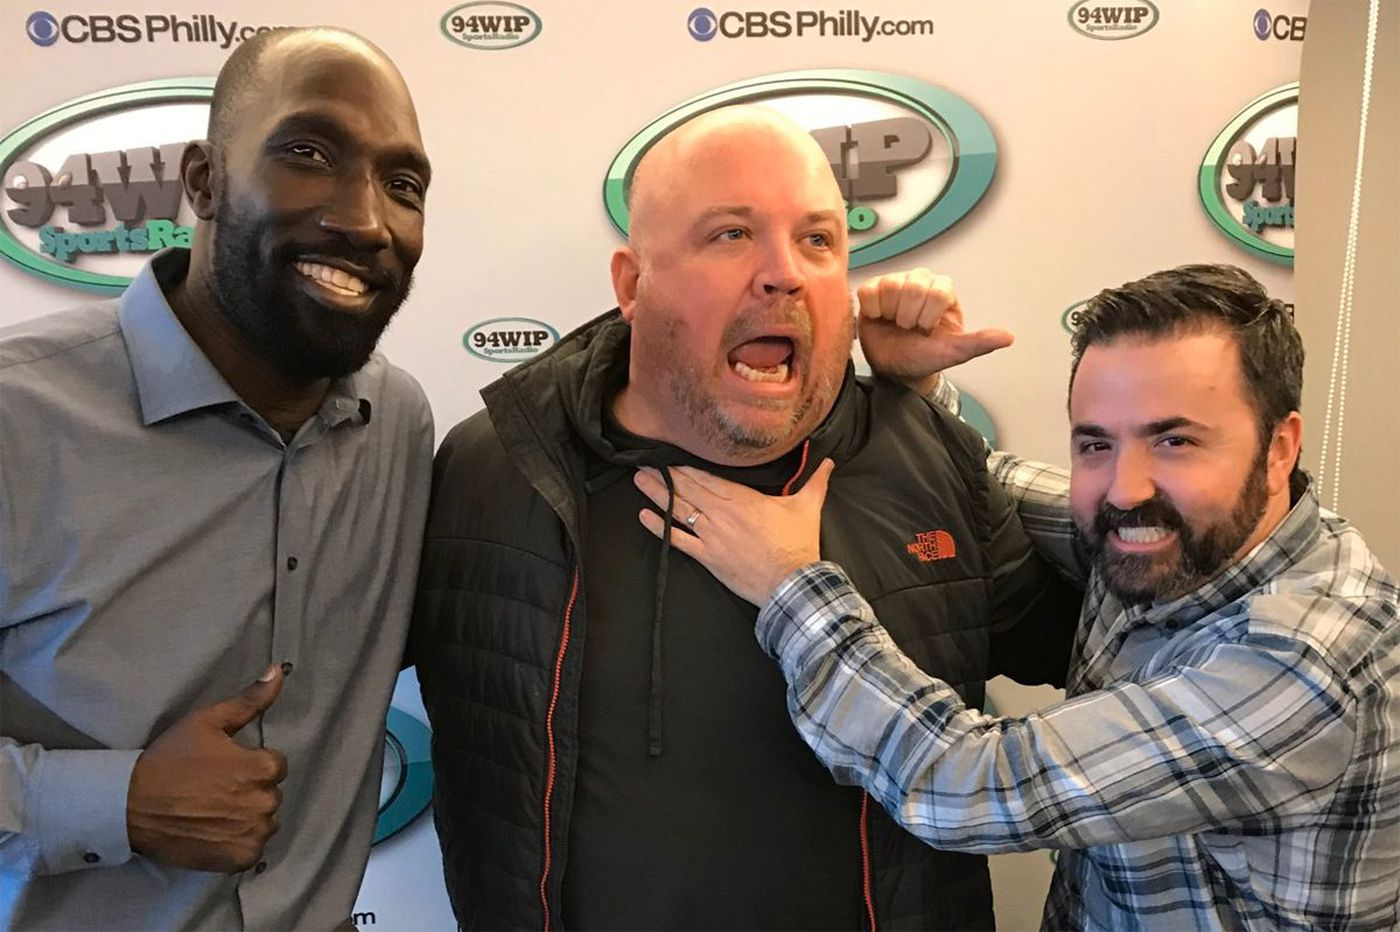 Former WIP host Chris Carlin's move to New York to replace Mike Francesa isn't going well